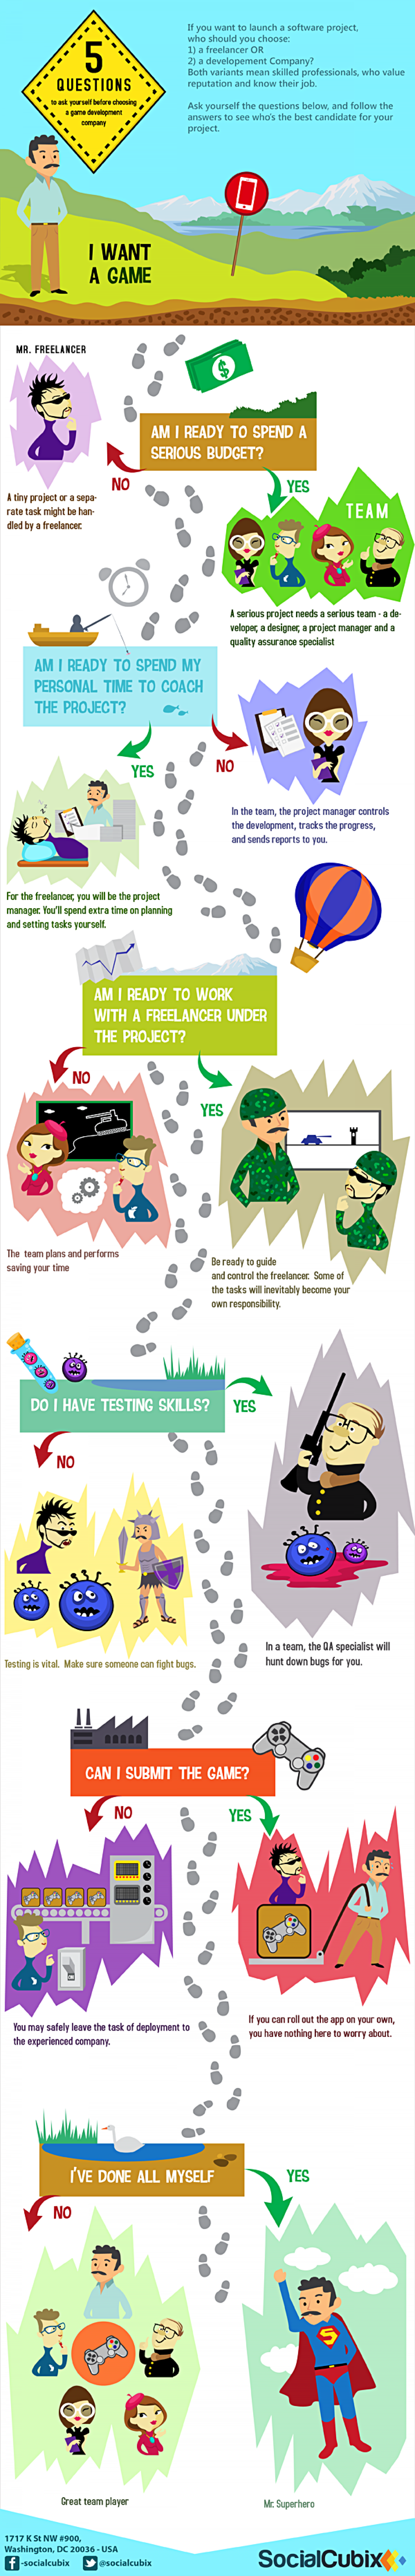 5 questions about choosing a mobile game development company Infographic